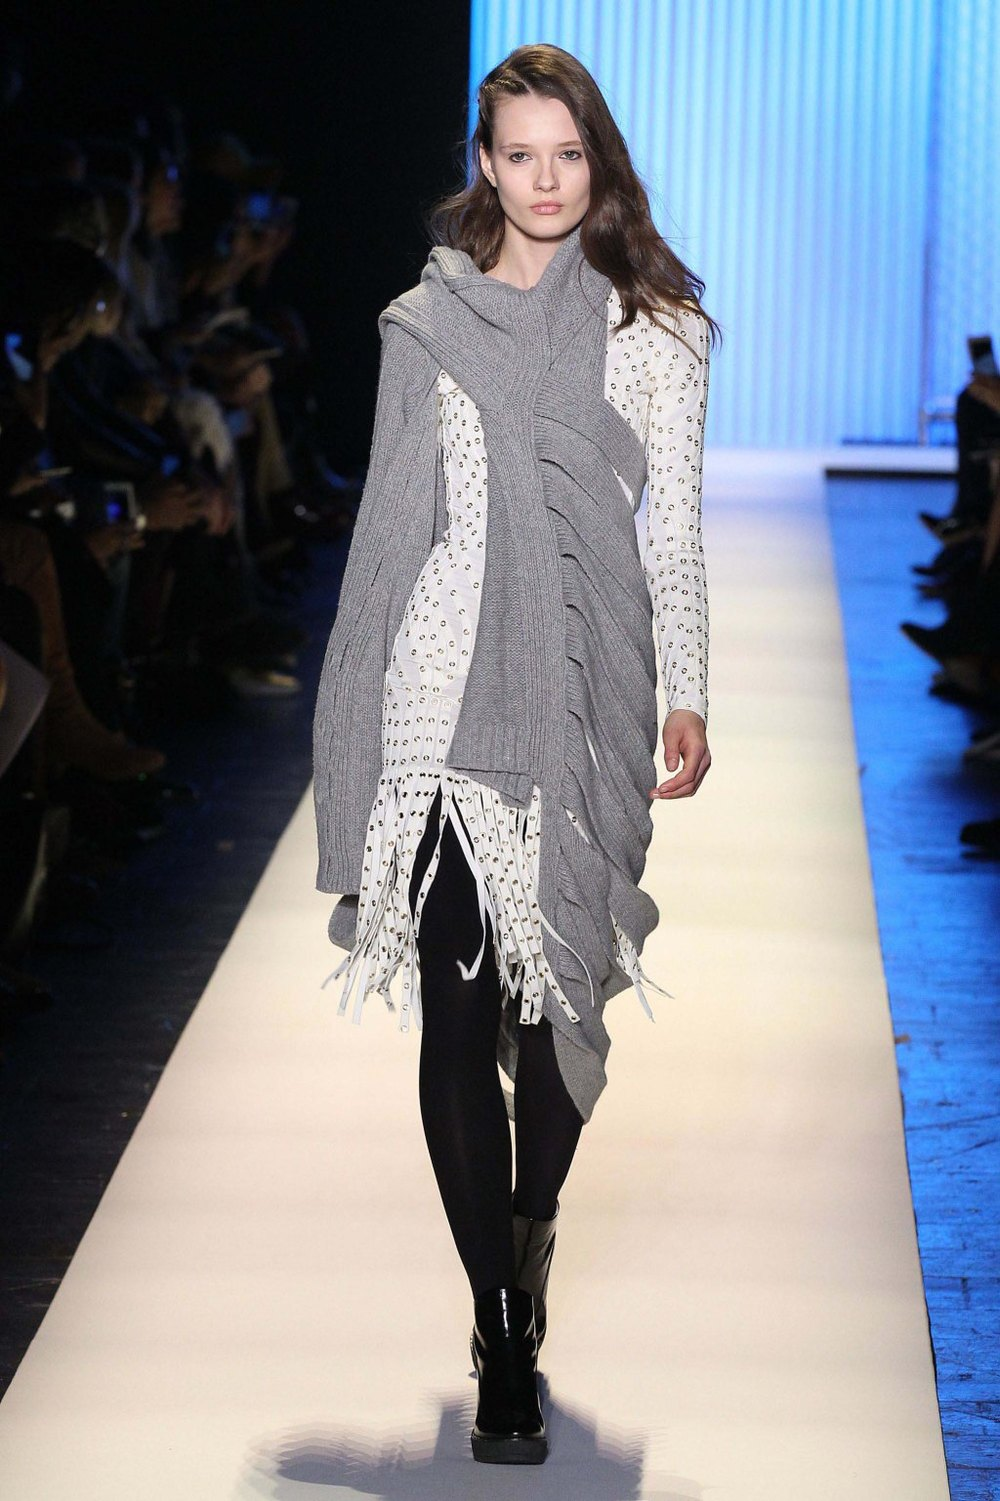 NYFW Hervé Léger Fashion Show Fall:Winter 2016 Louboutins & Love Fashion Blog Esther Santer NYC Street Style Models Collection Hair Makeup Bandage Dresses Pretty Fringe Trends White Pink Inspo Press Event Coverage Details Photos Hair Jacket  Outfit .jpg